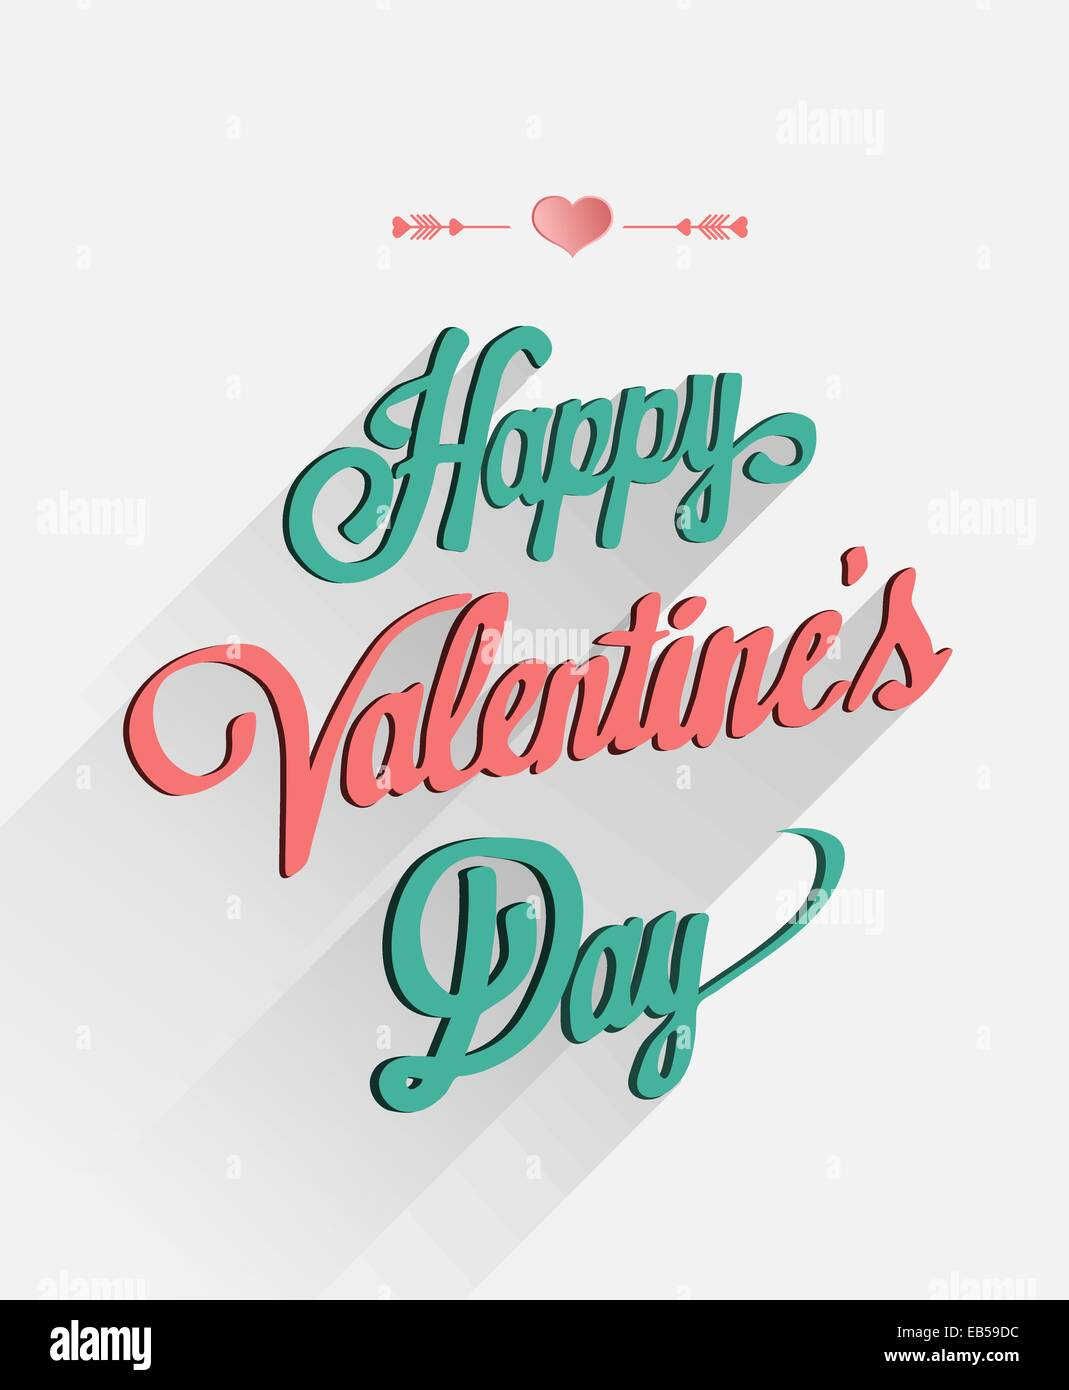 Happy Valentines Day Vector In Cursive Font Stock Vector Art